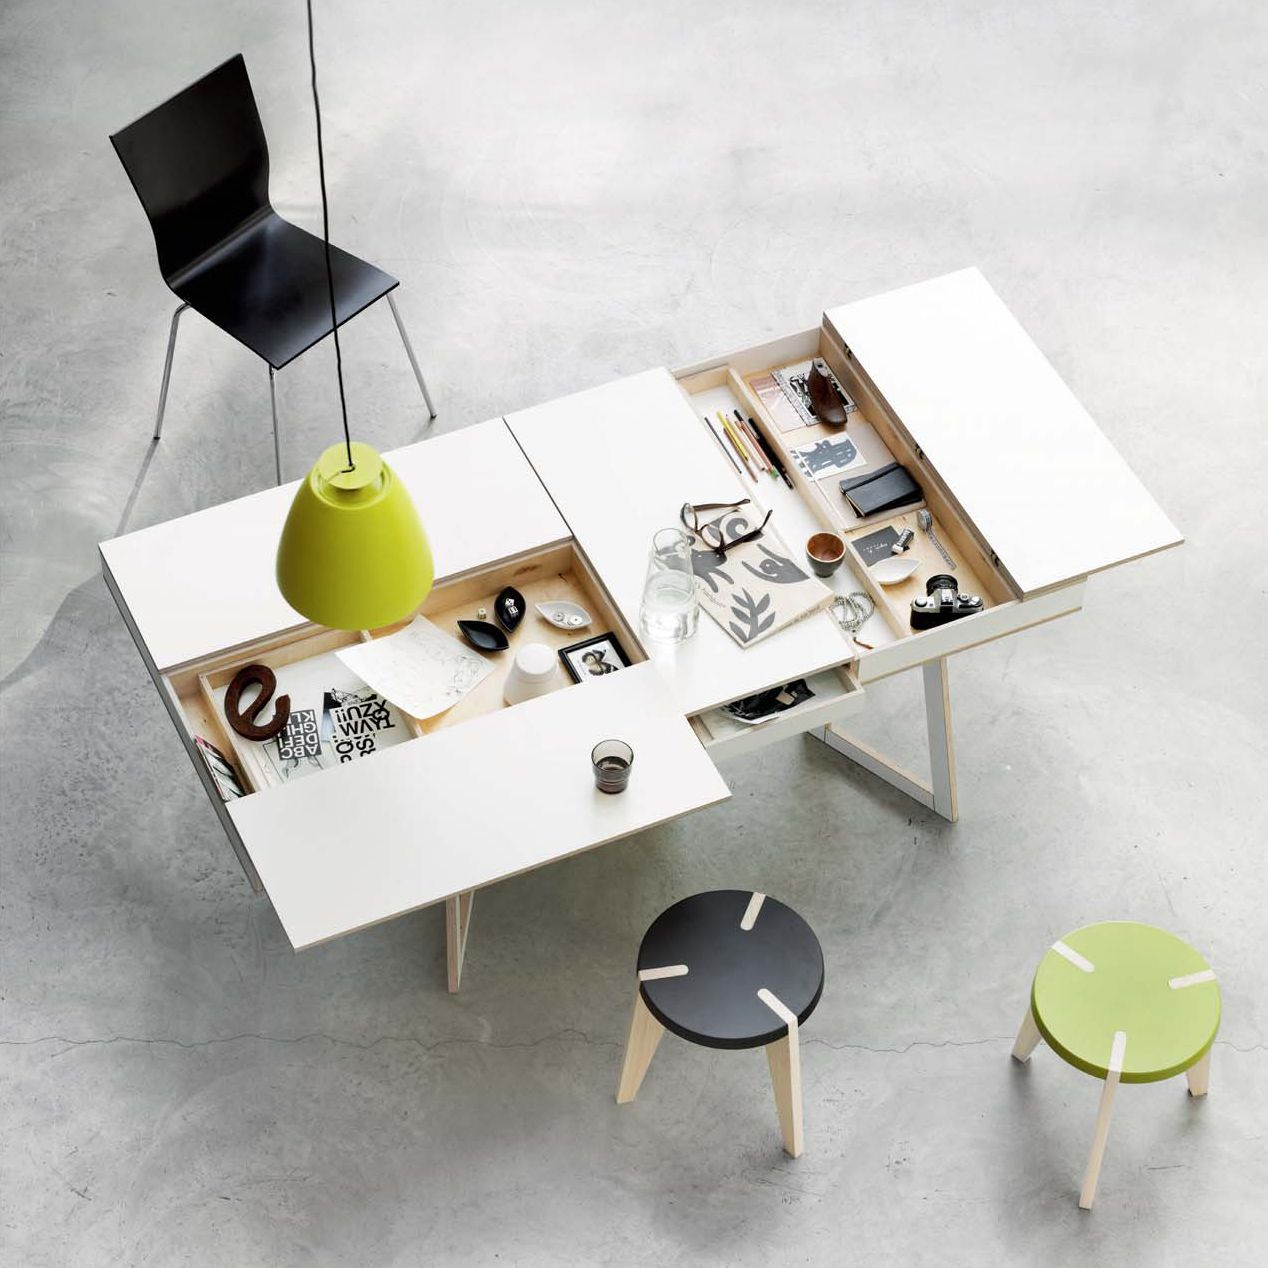 Wonderful Furniture, Modern Furniture Design Ideas With Hidden Compartments Desk  Design Ideas With Black Office Chair Design And Green Pendant Lamp Ideas  For Home ... Images